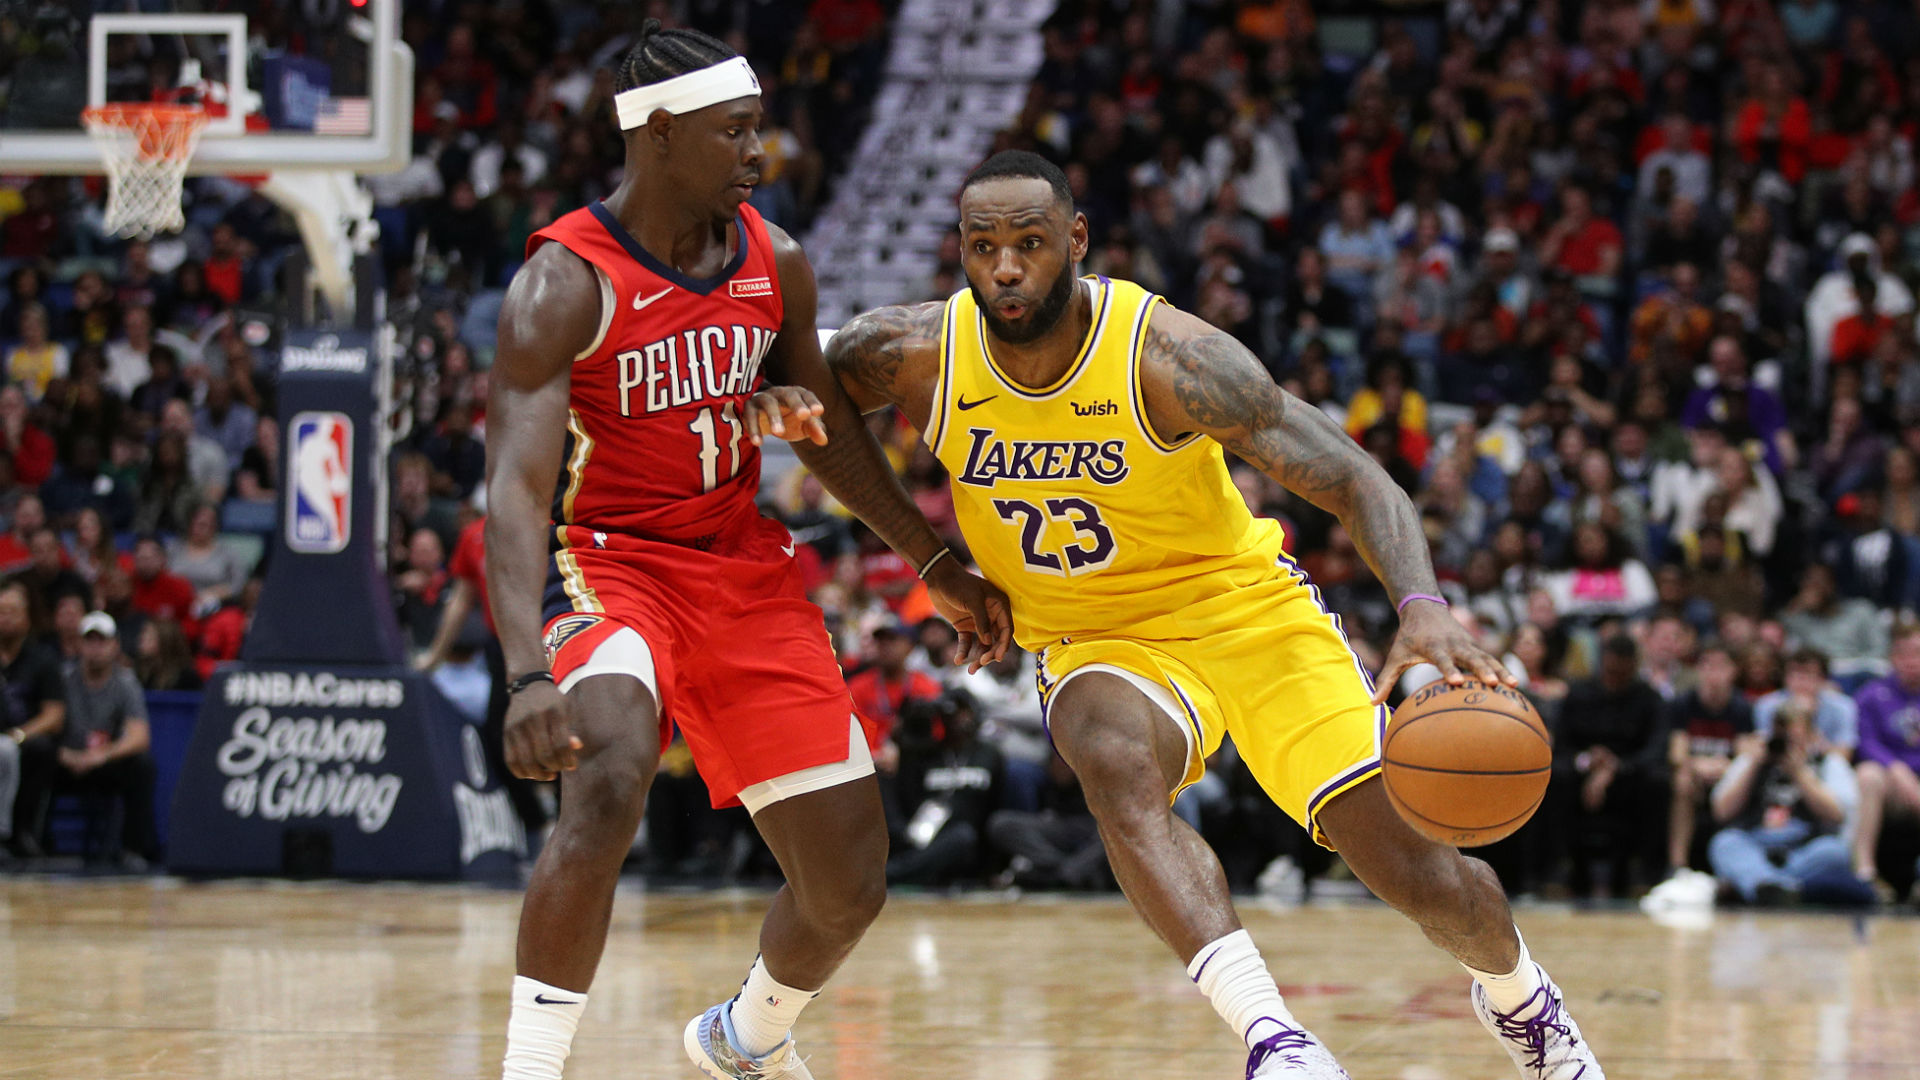 Jrue-holiday-lebron-james-getty-022520-ftrjpg_9q4dvqt8595y18ldvtpi6enlw